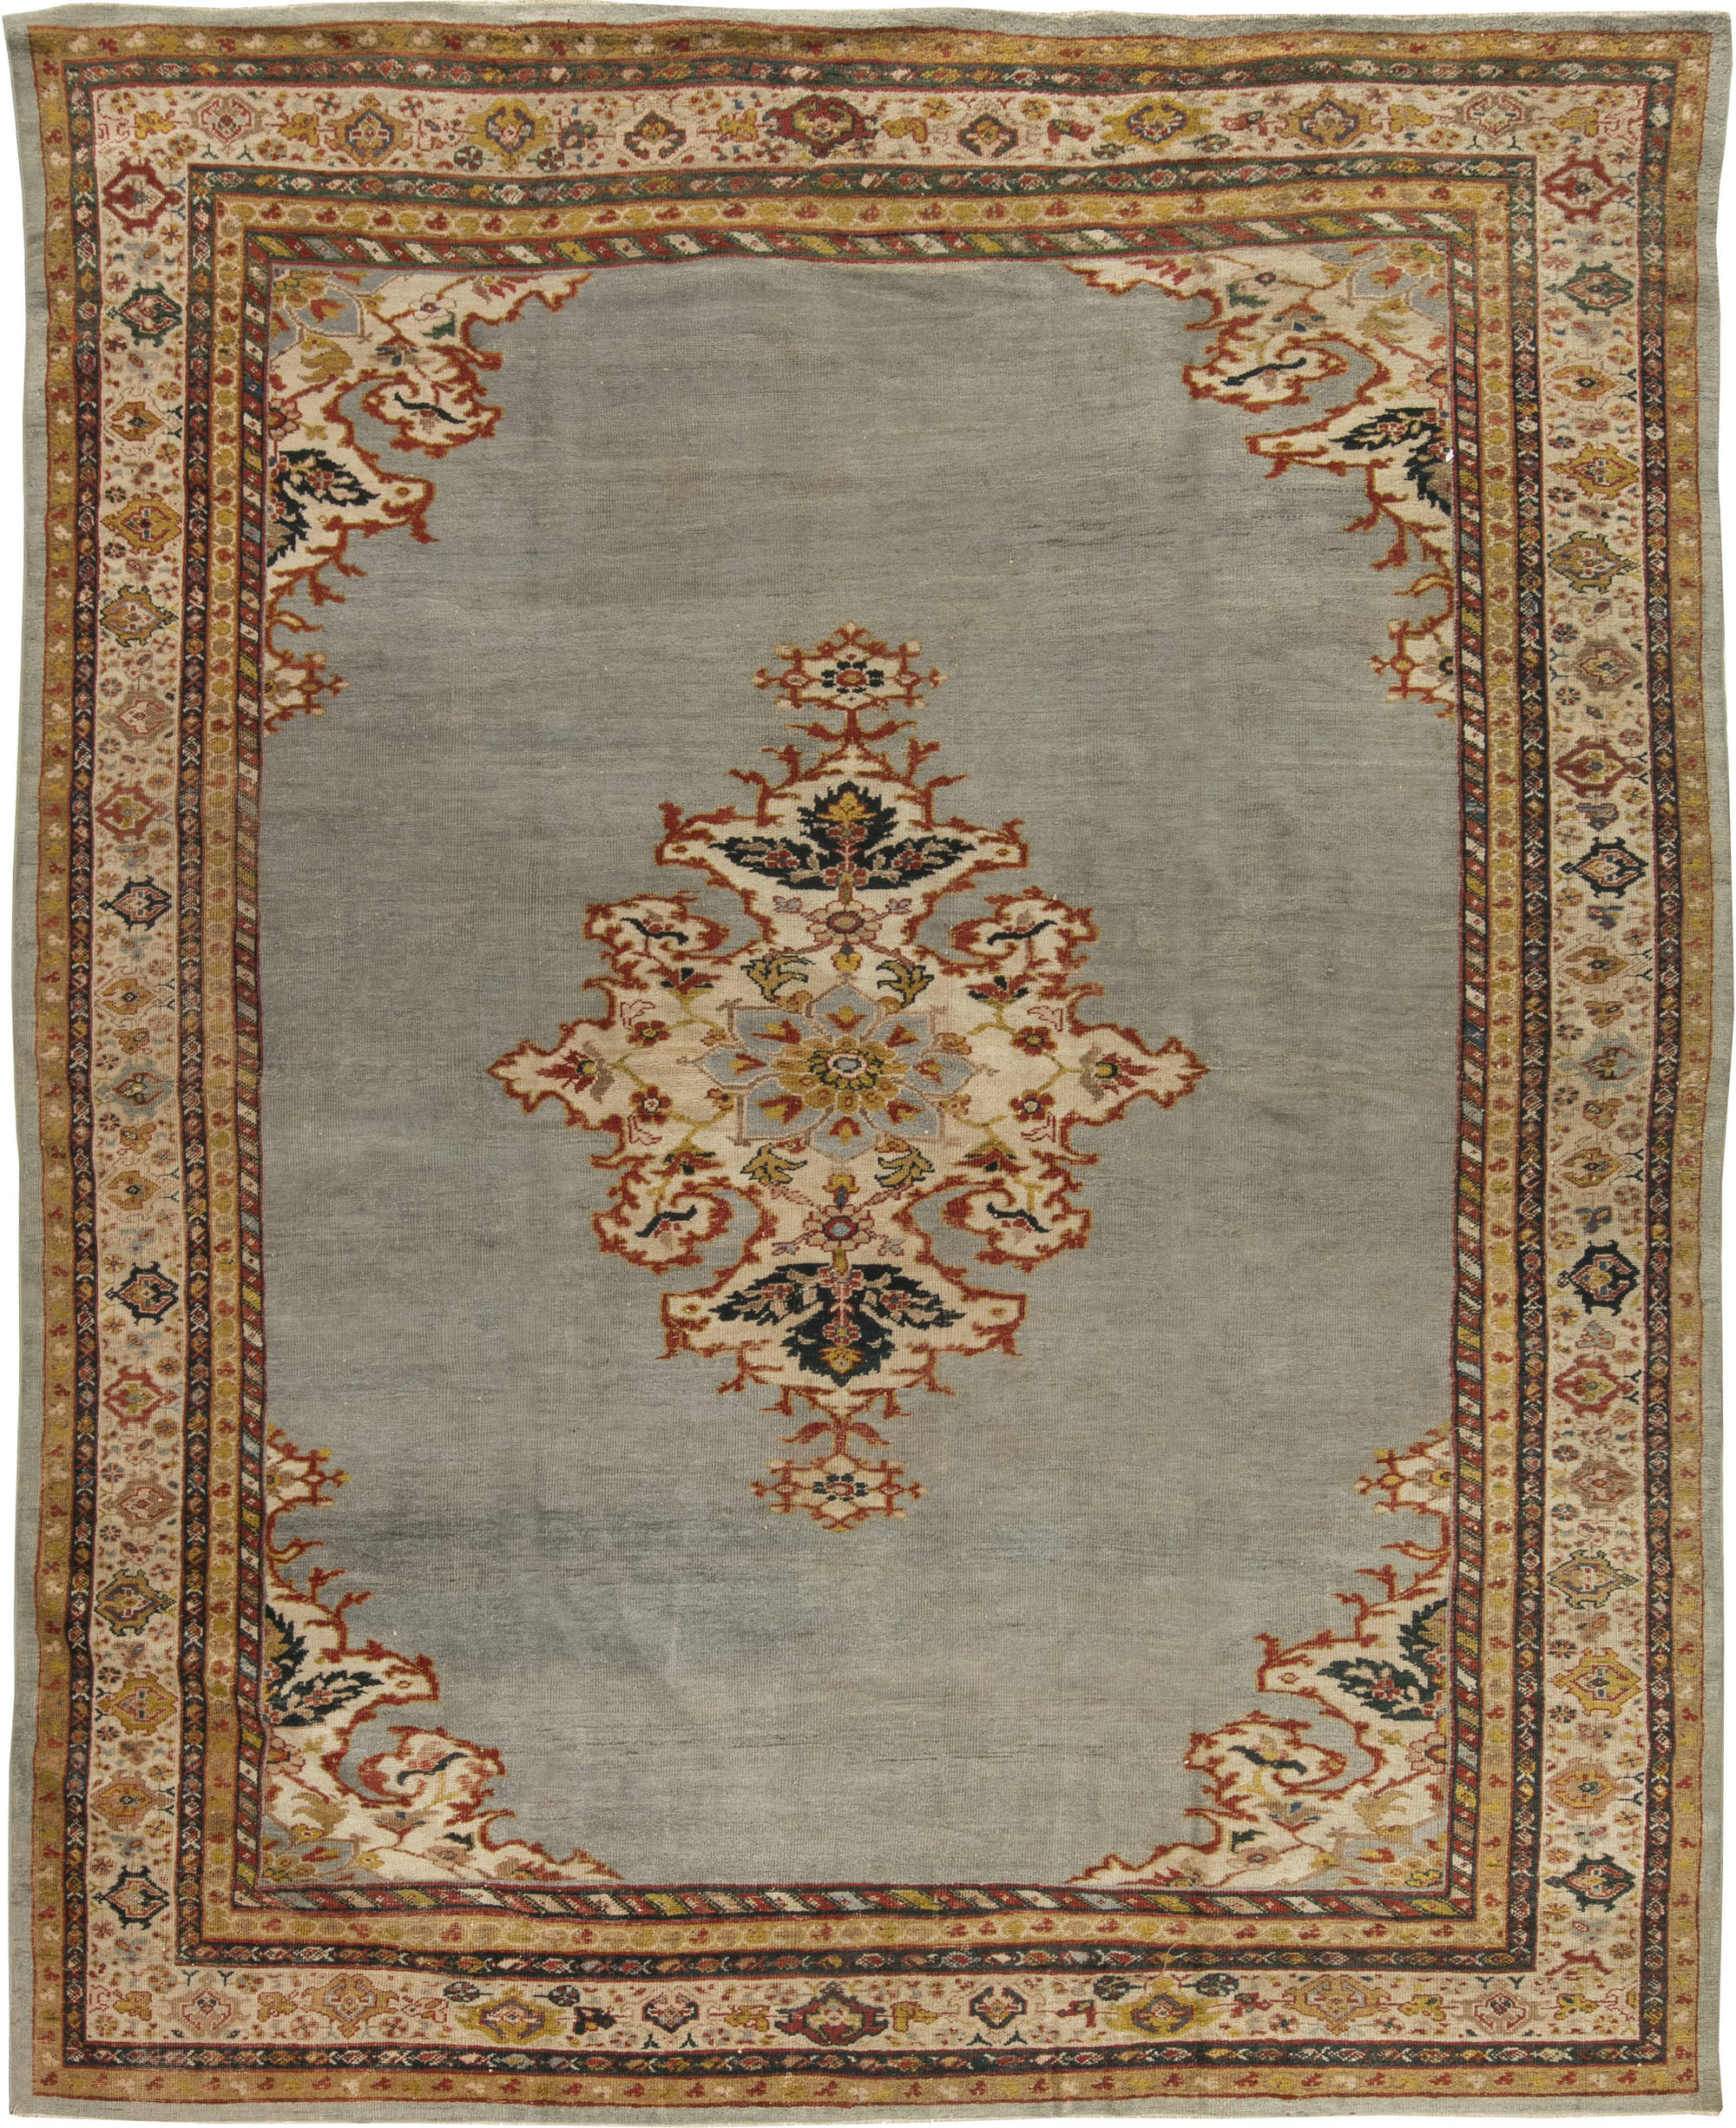 Antique Persian Sultanabad Rug Bb6484 By Dlb